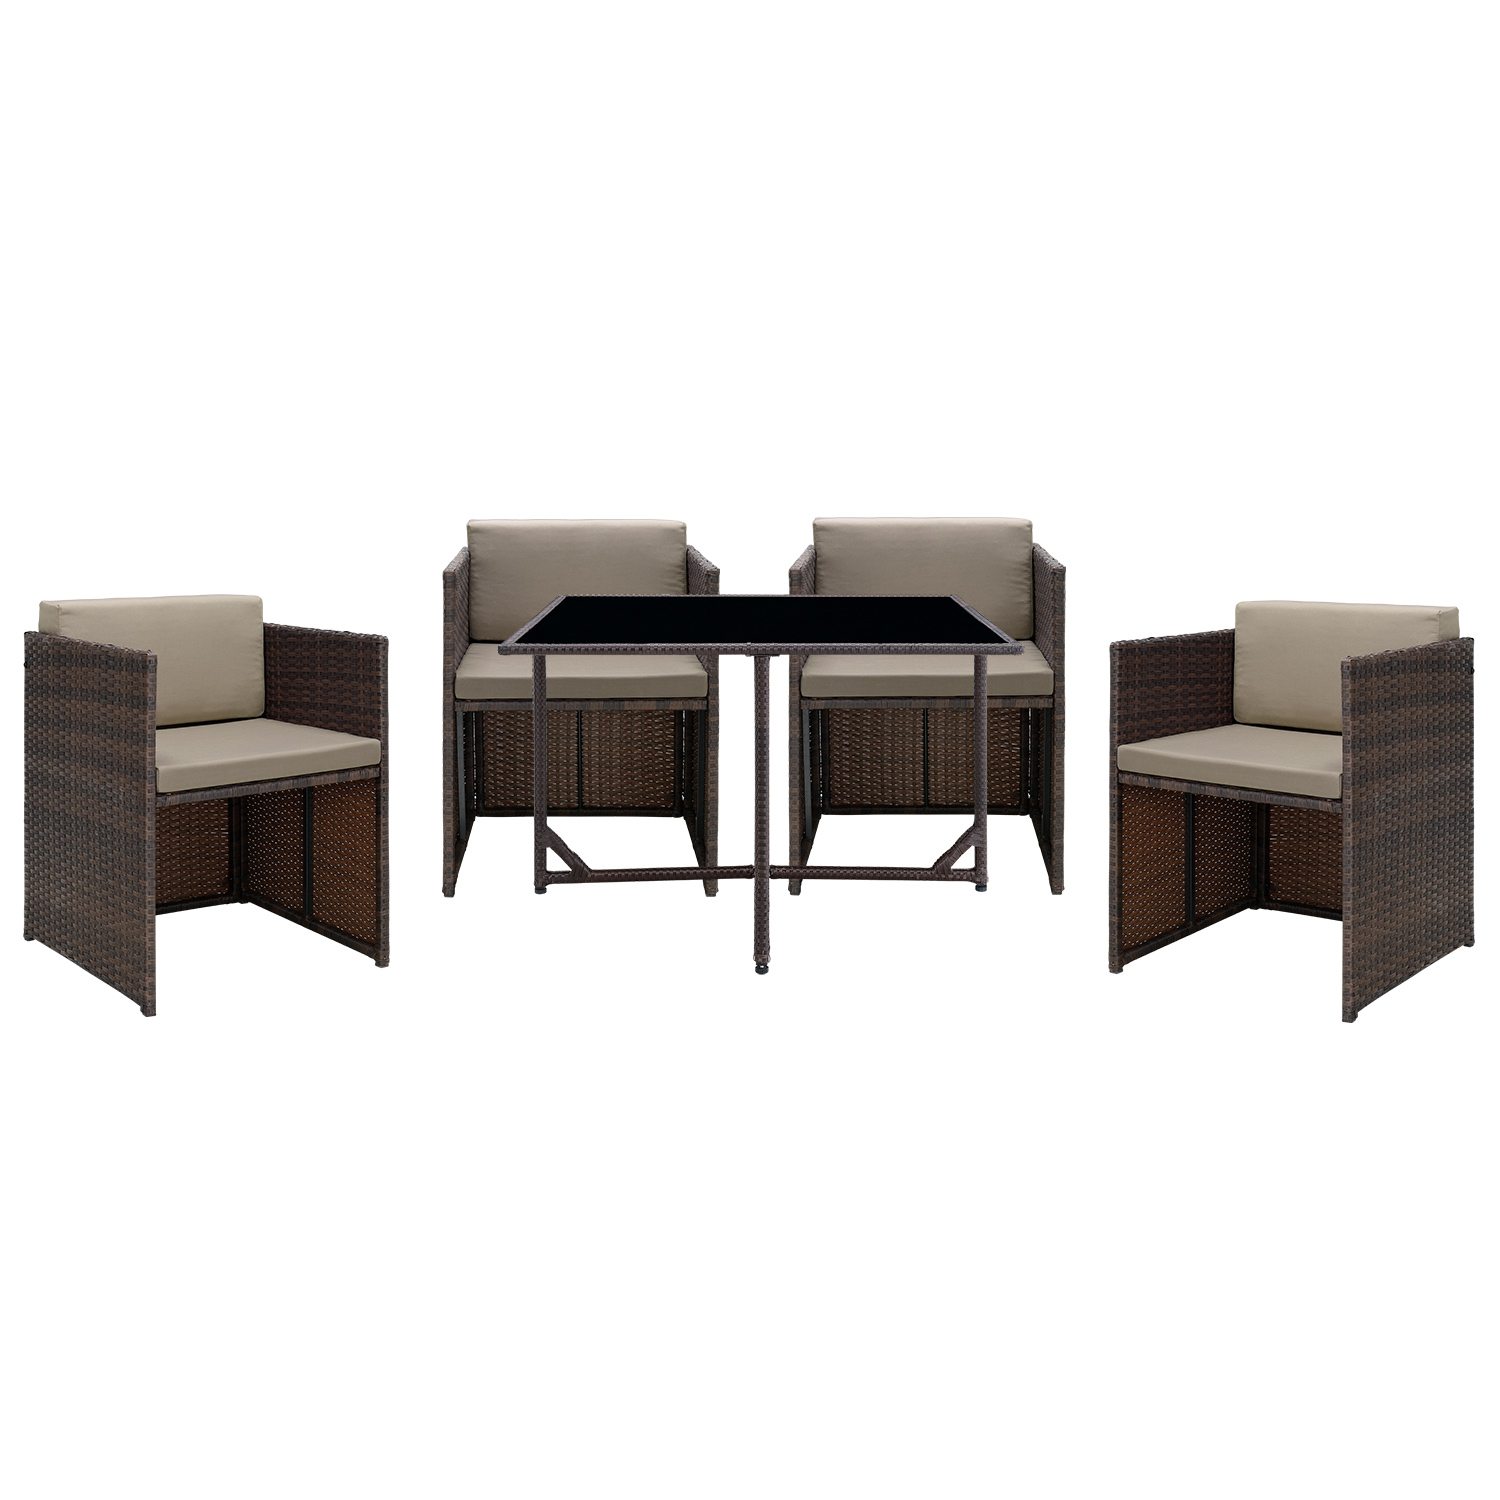 casa pro poly rattan sitzgruppe tisch 4 st hle lounge garten garnitur m bel ebay. Black Bedroom Furniture Sets. Home Design Ideas